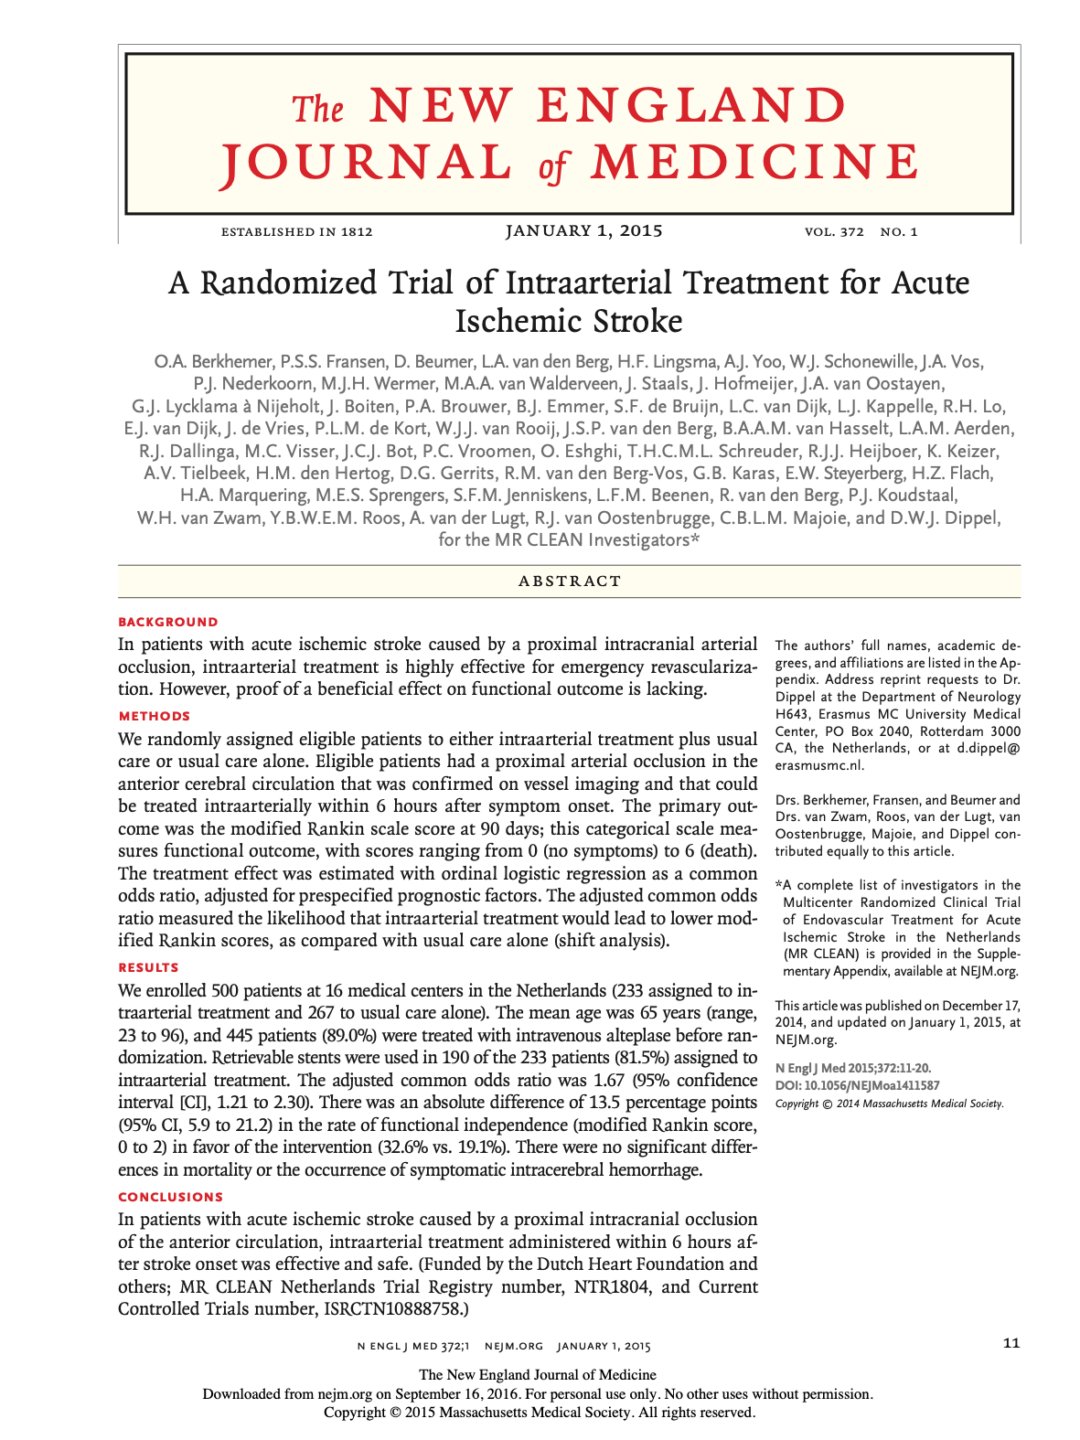 A Randomized Trial of Intraarterial Treatment for Acute Ischemic Stroke